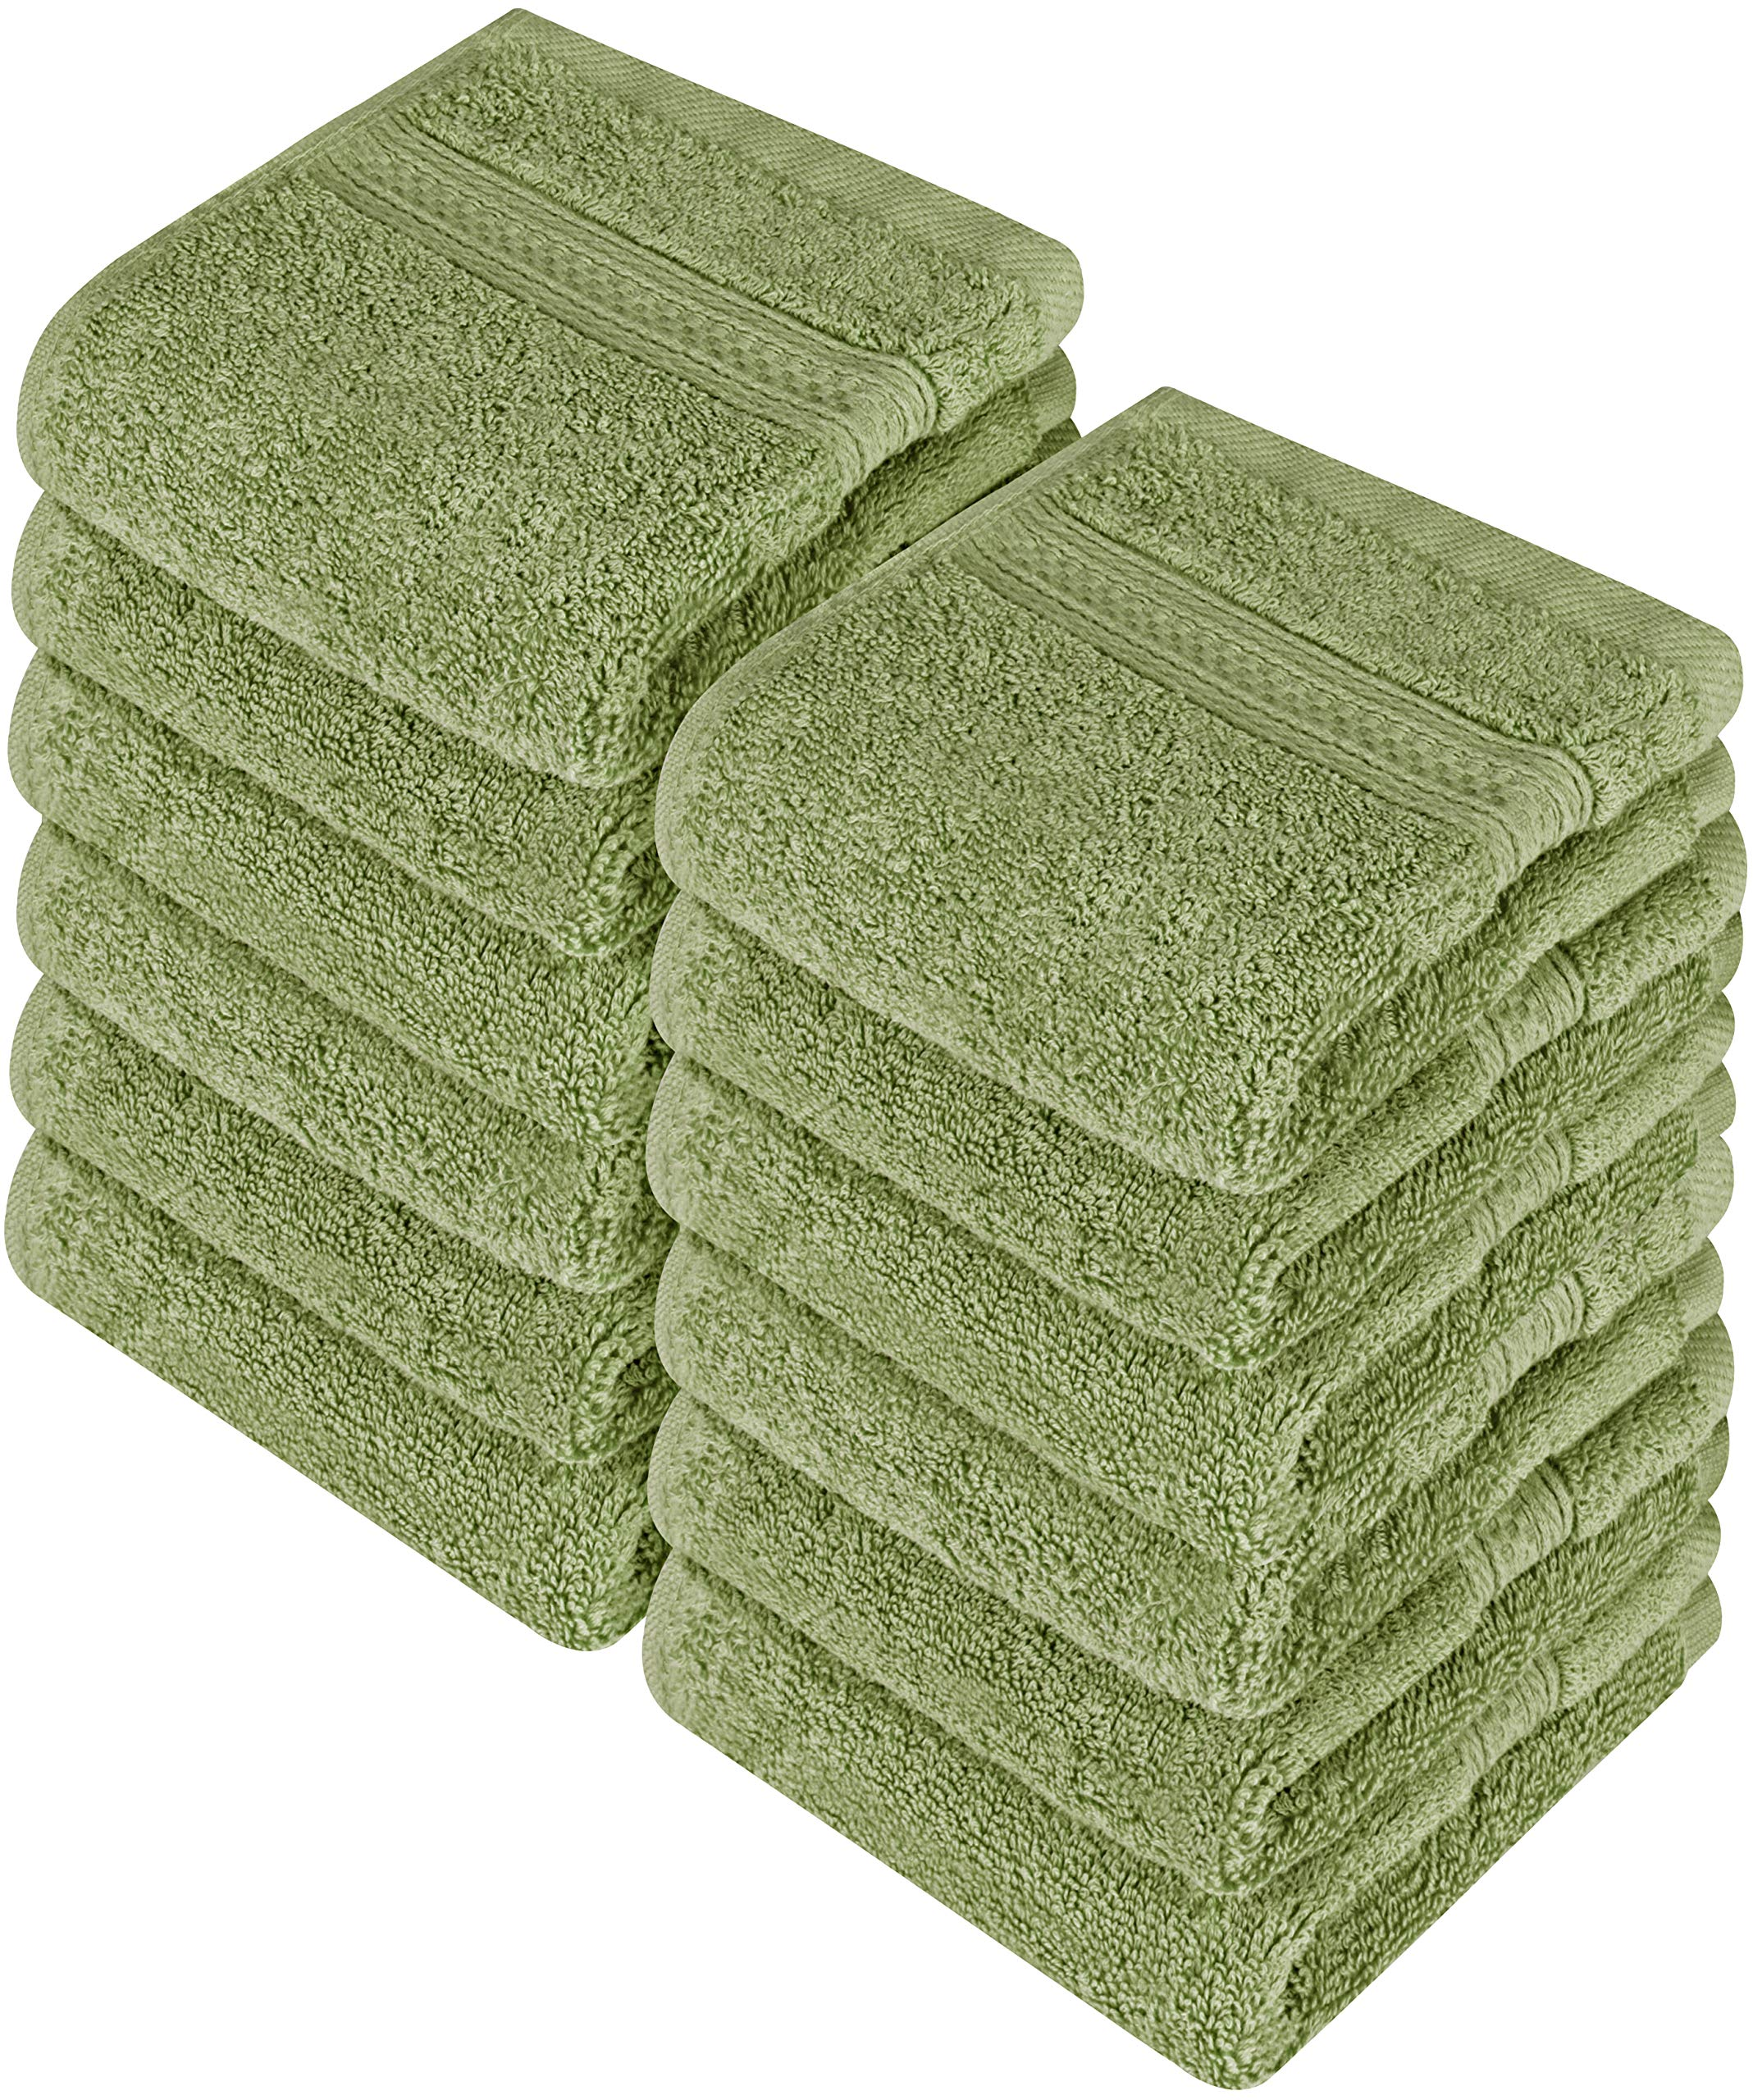 Utopia Towels Premium 252 Pack 700 GSM Cotton Washcloths Bulk– (12 x 12 Inches Face Towels Bulk) Extra Soft Wash Cloths, Sage Green